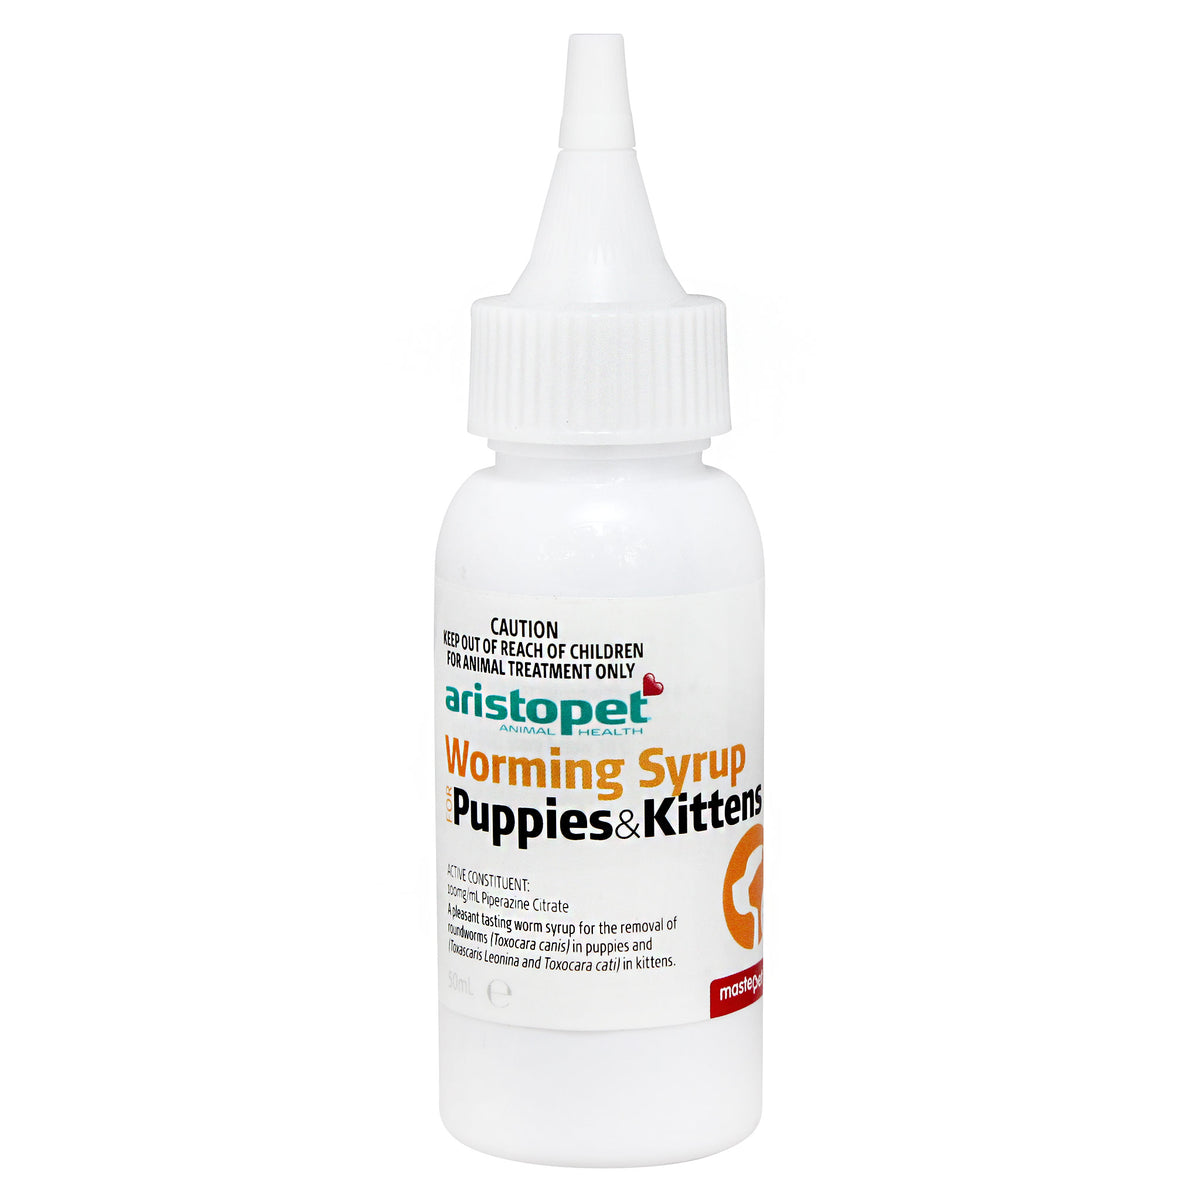 Aristopet Worming Syrup for Puppies & Kittens  50mL